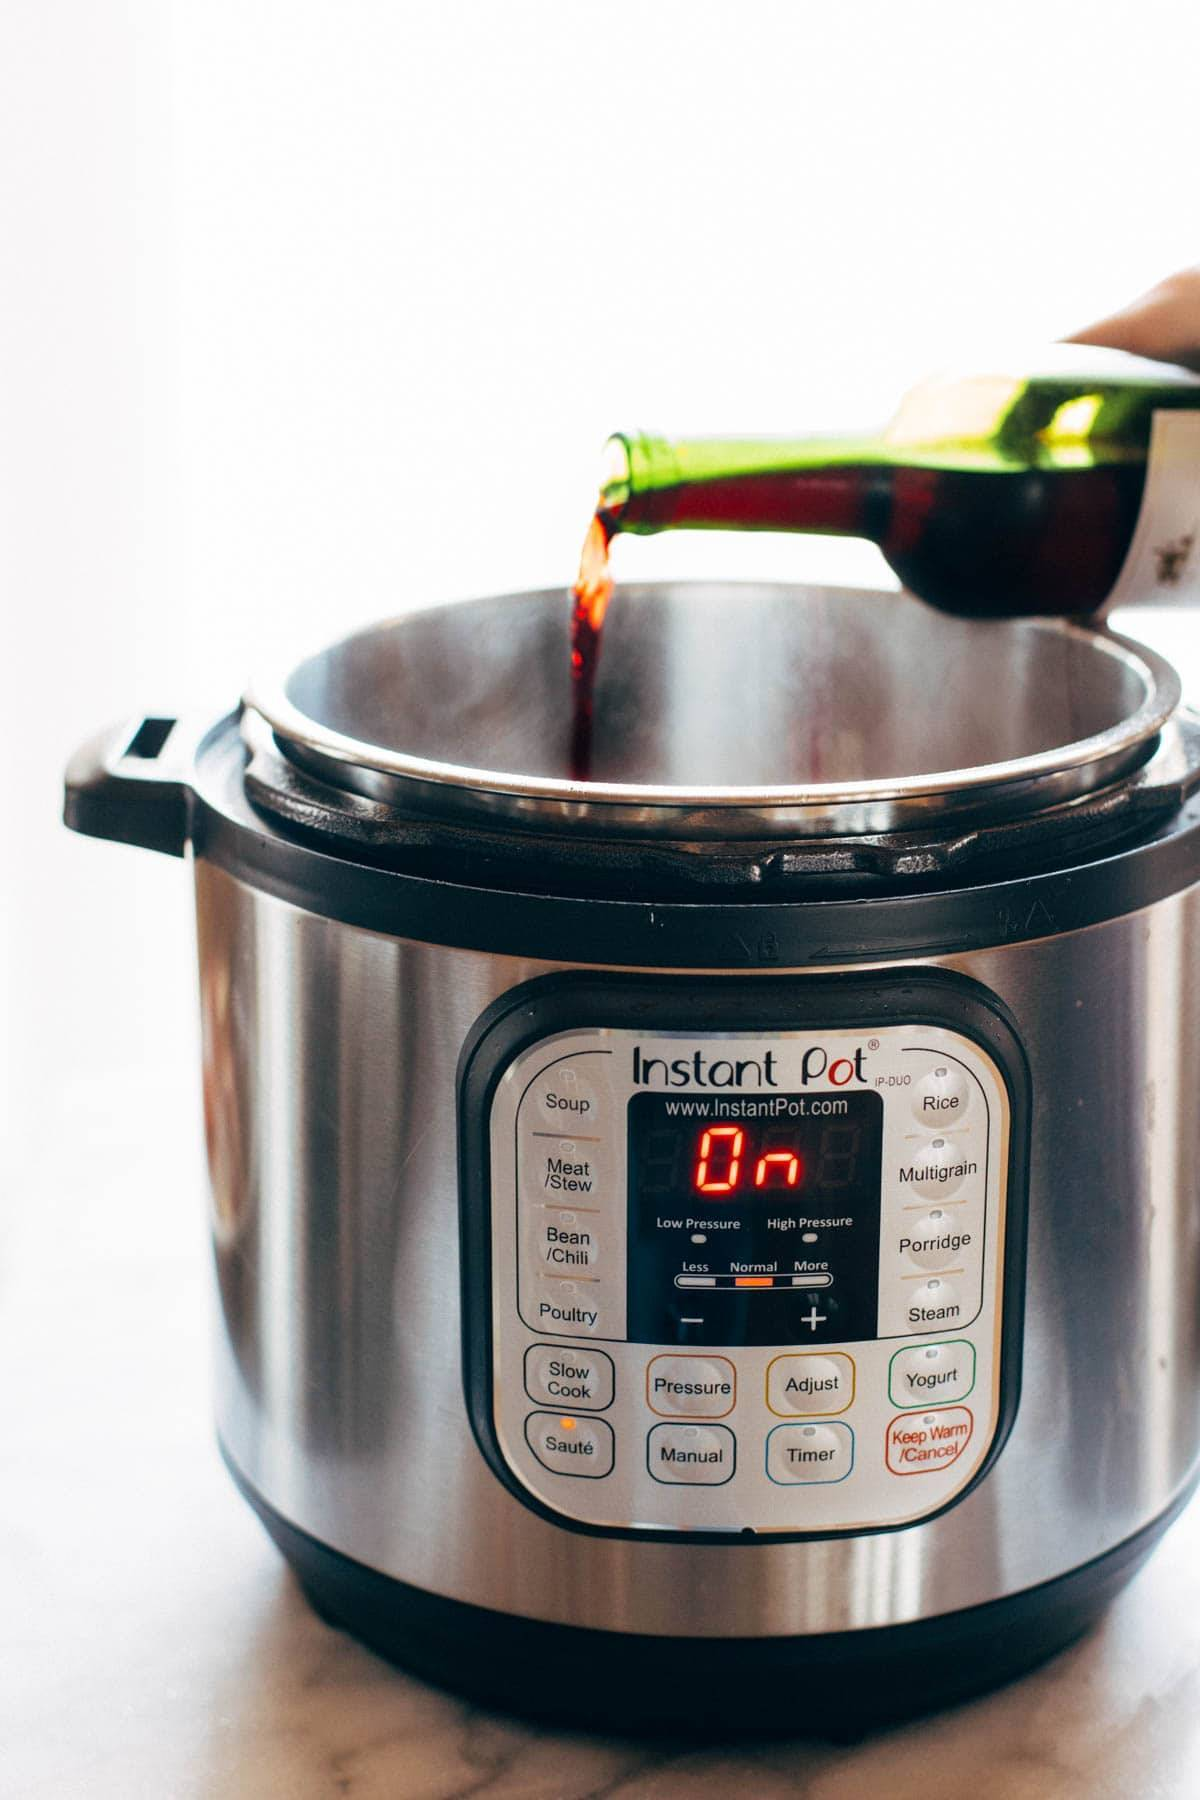 Wine poured into an Instant Pot.